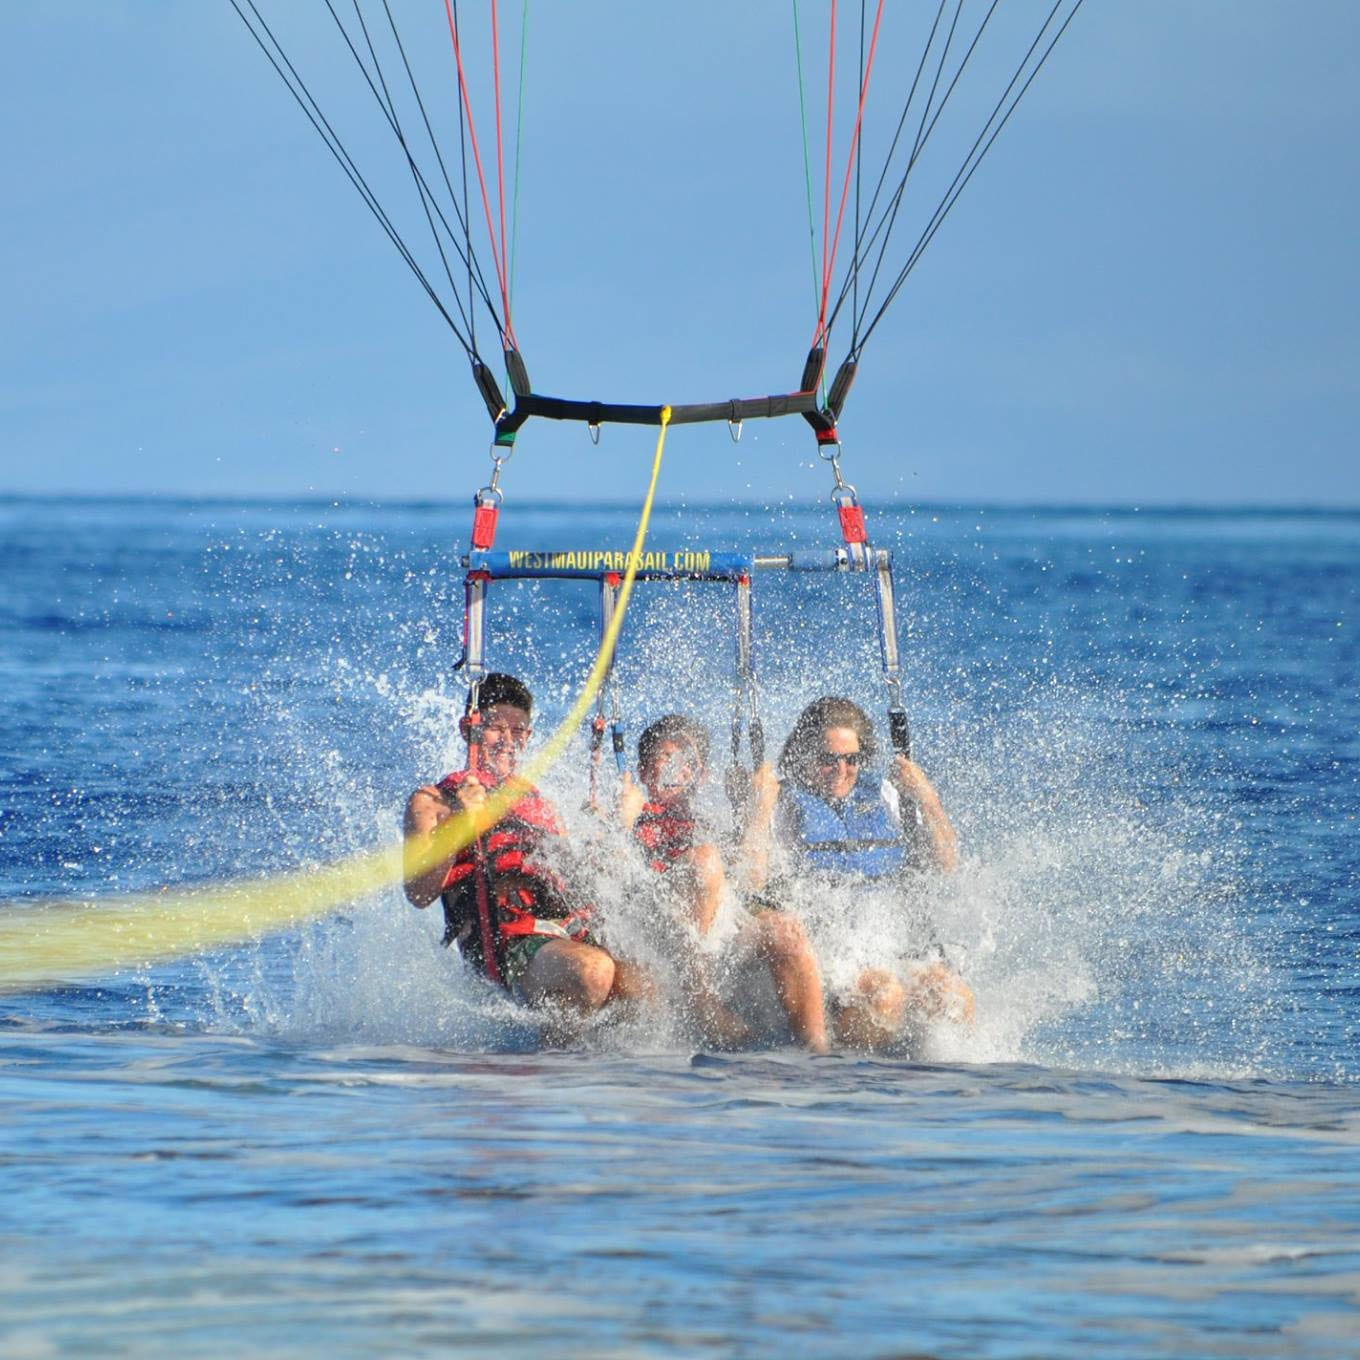 West Maui Parasail – Early Bird and Noon 800ft or 1200ft